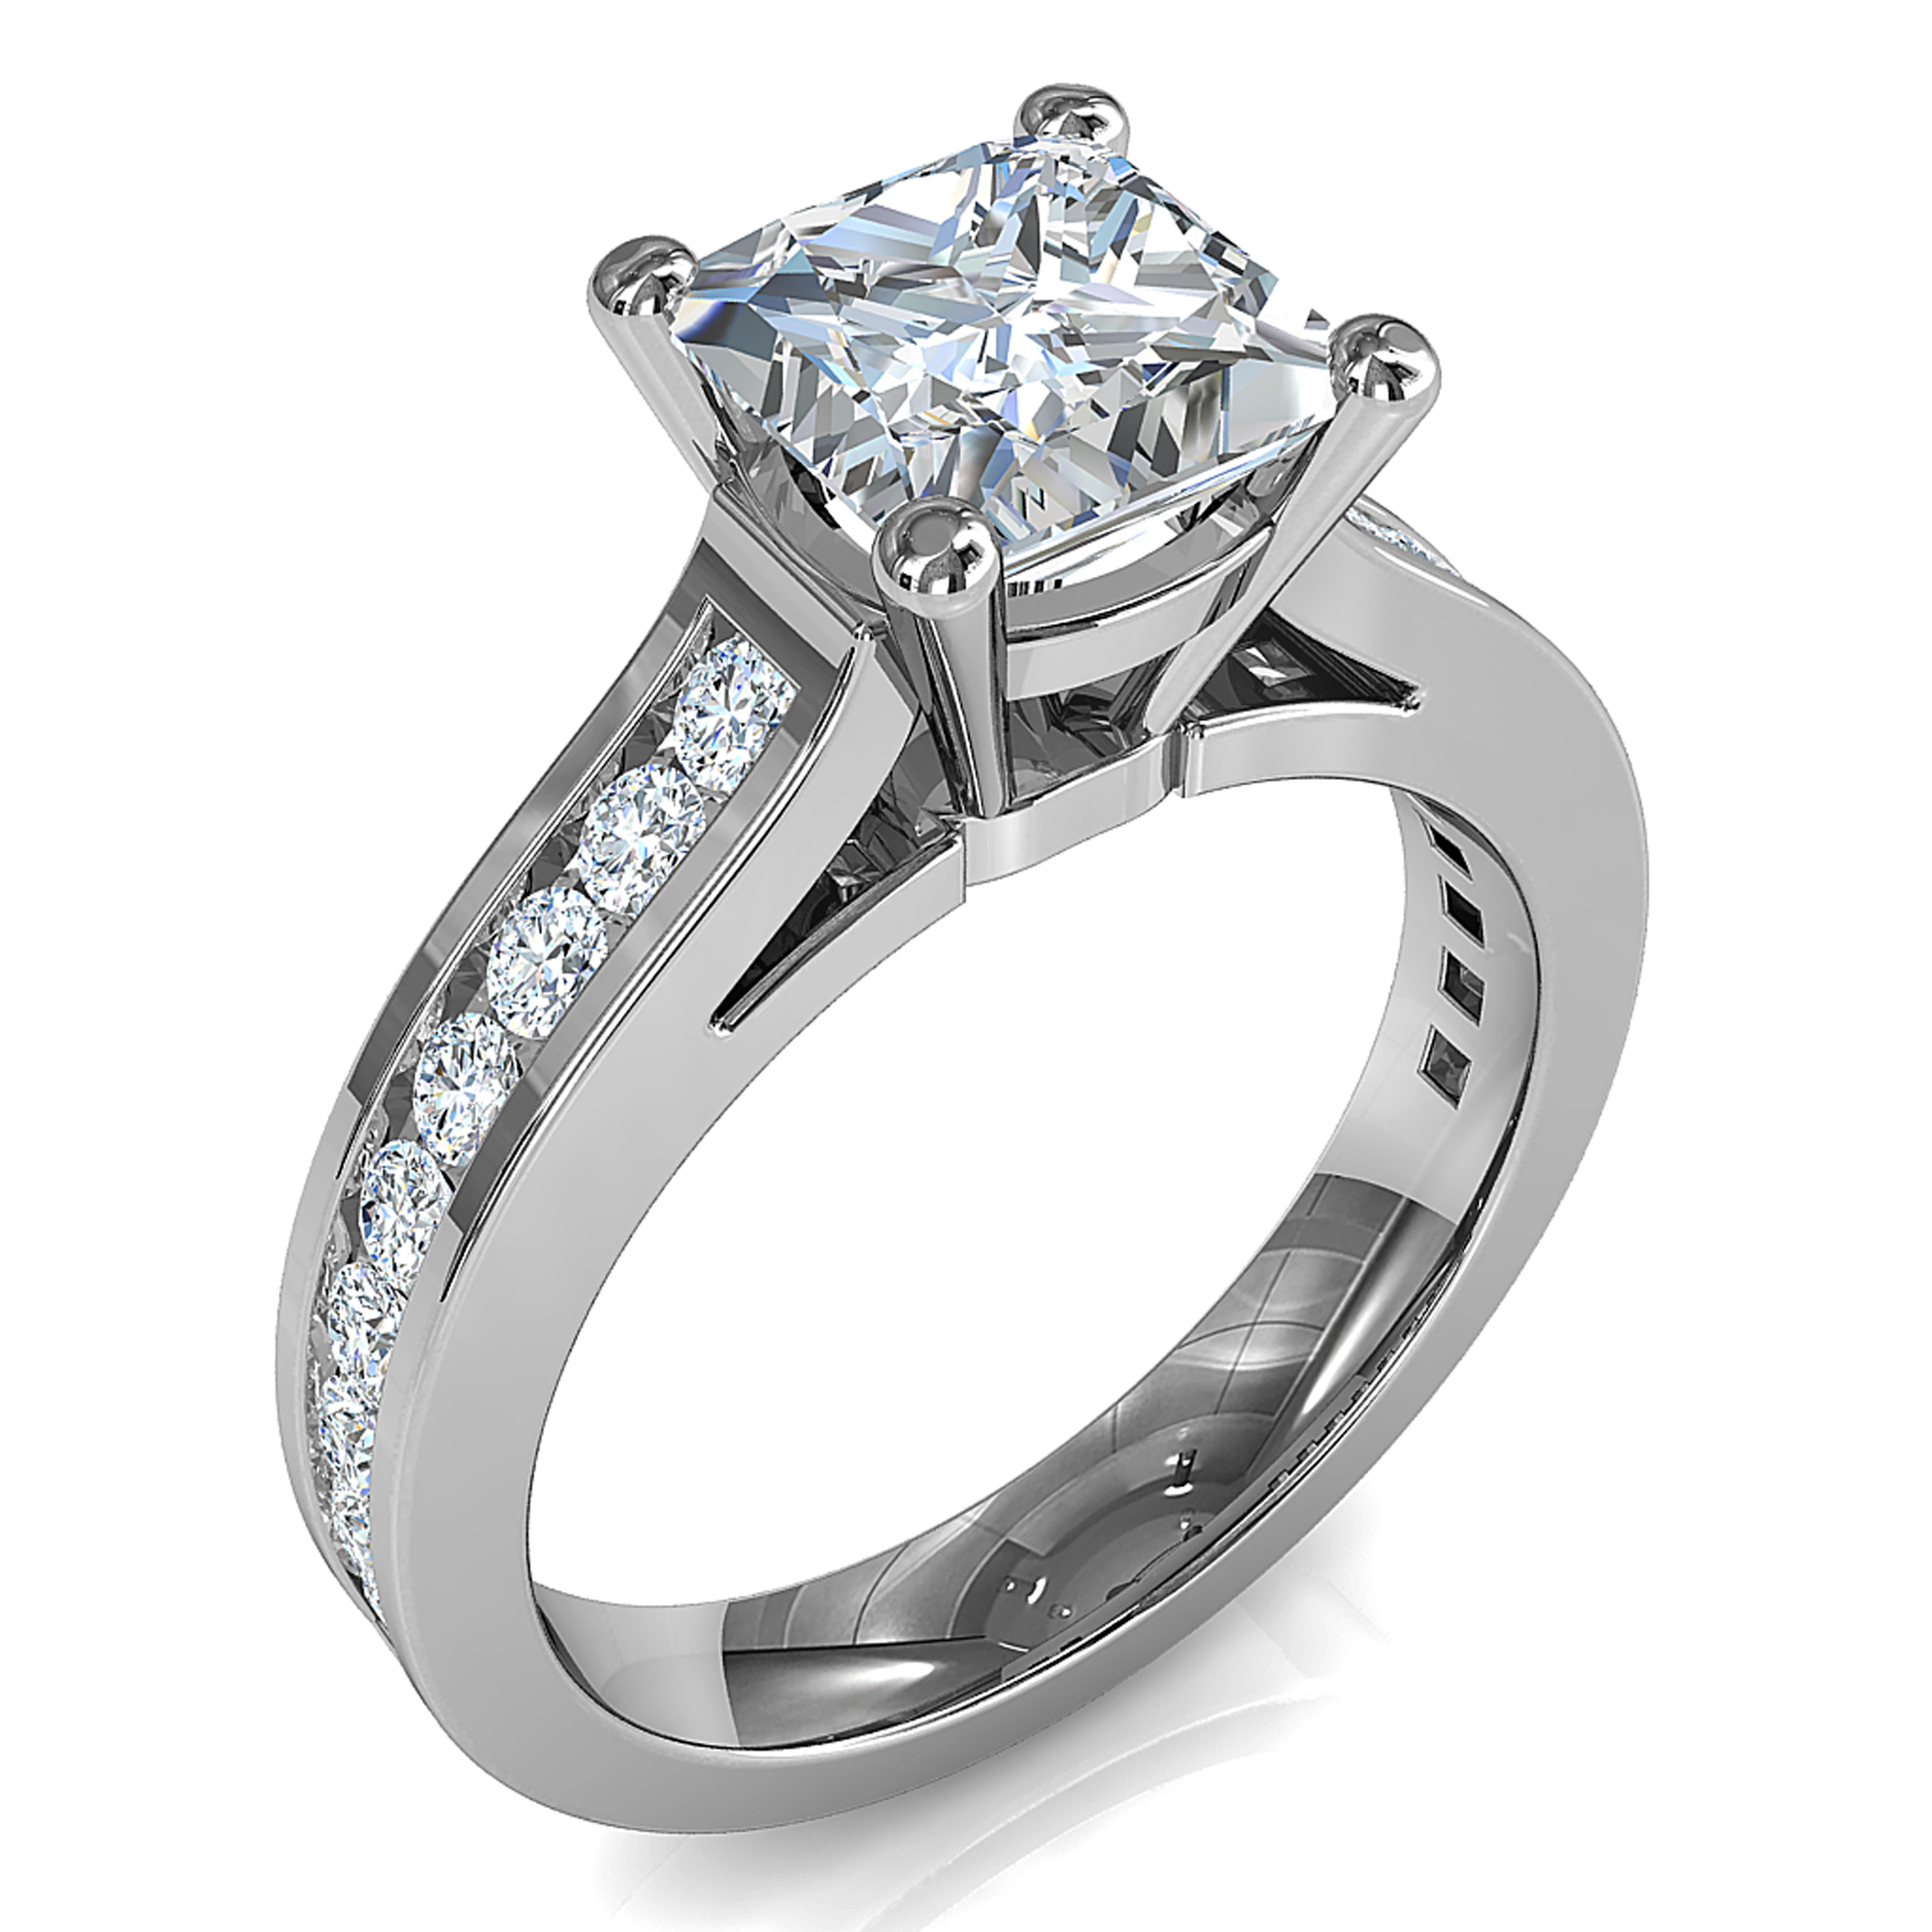 Princess Cut Solitaire Diamond Engagement Ring, 4 Claw Set on a Round Channel Set Band with Classic Underrail Setting.